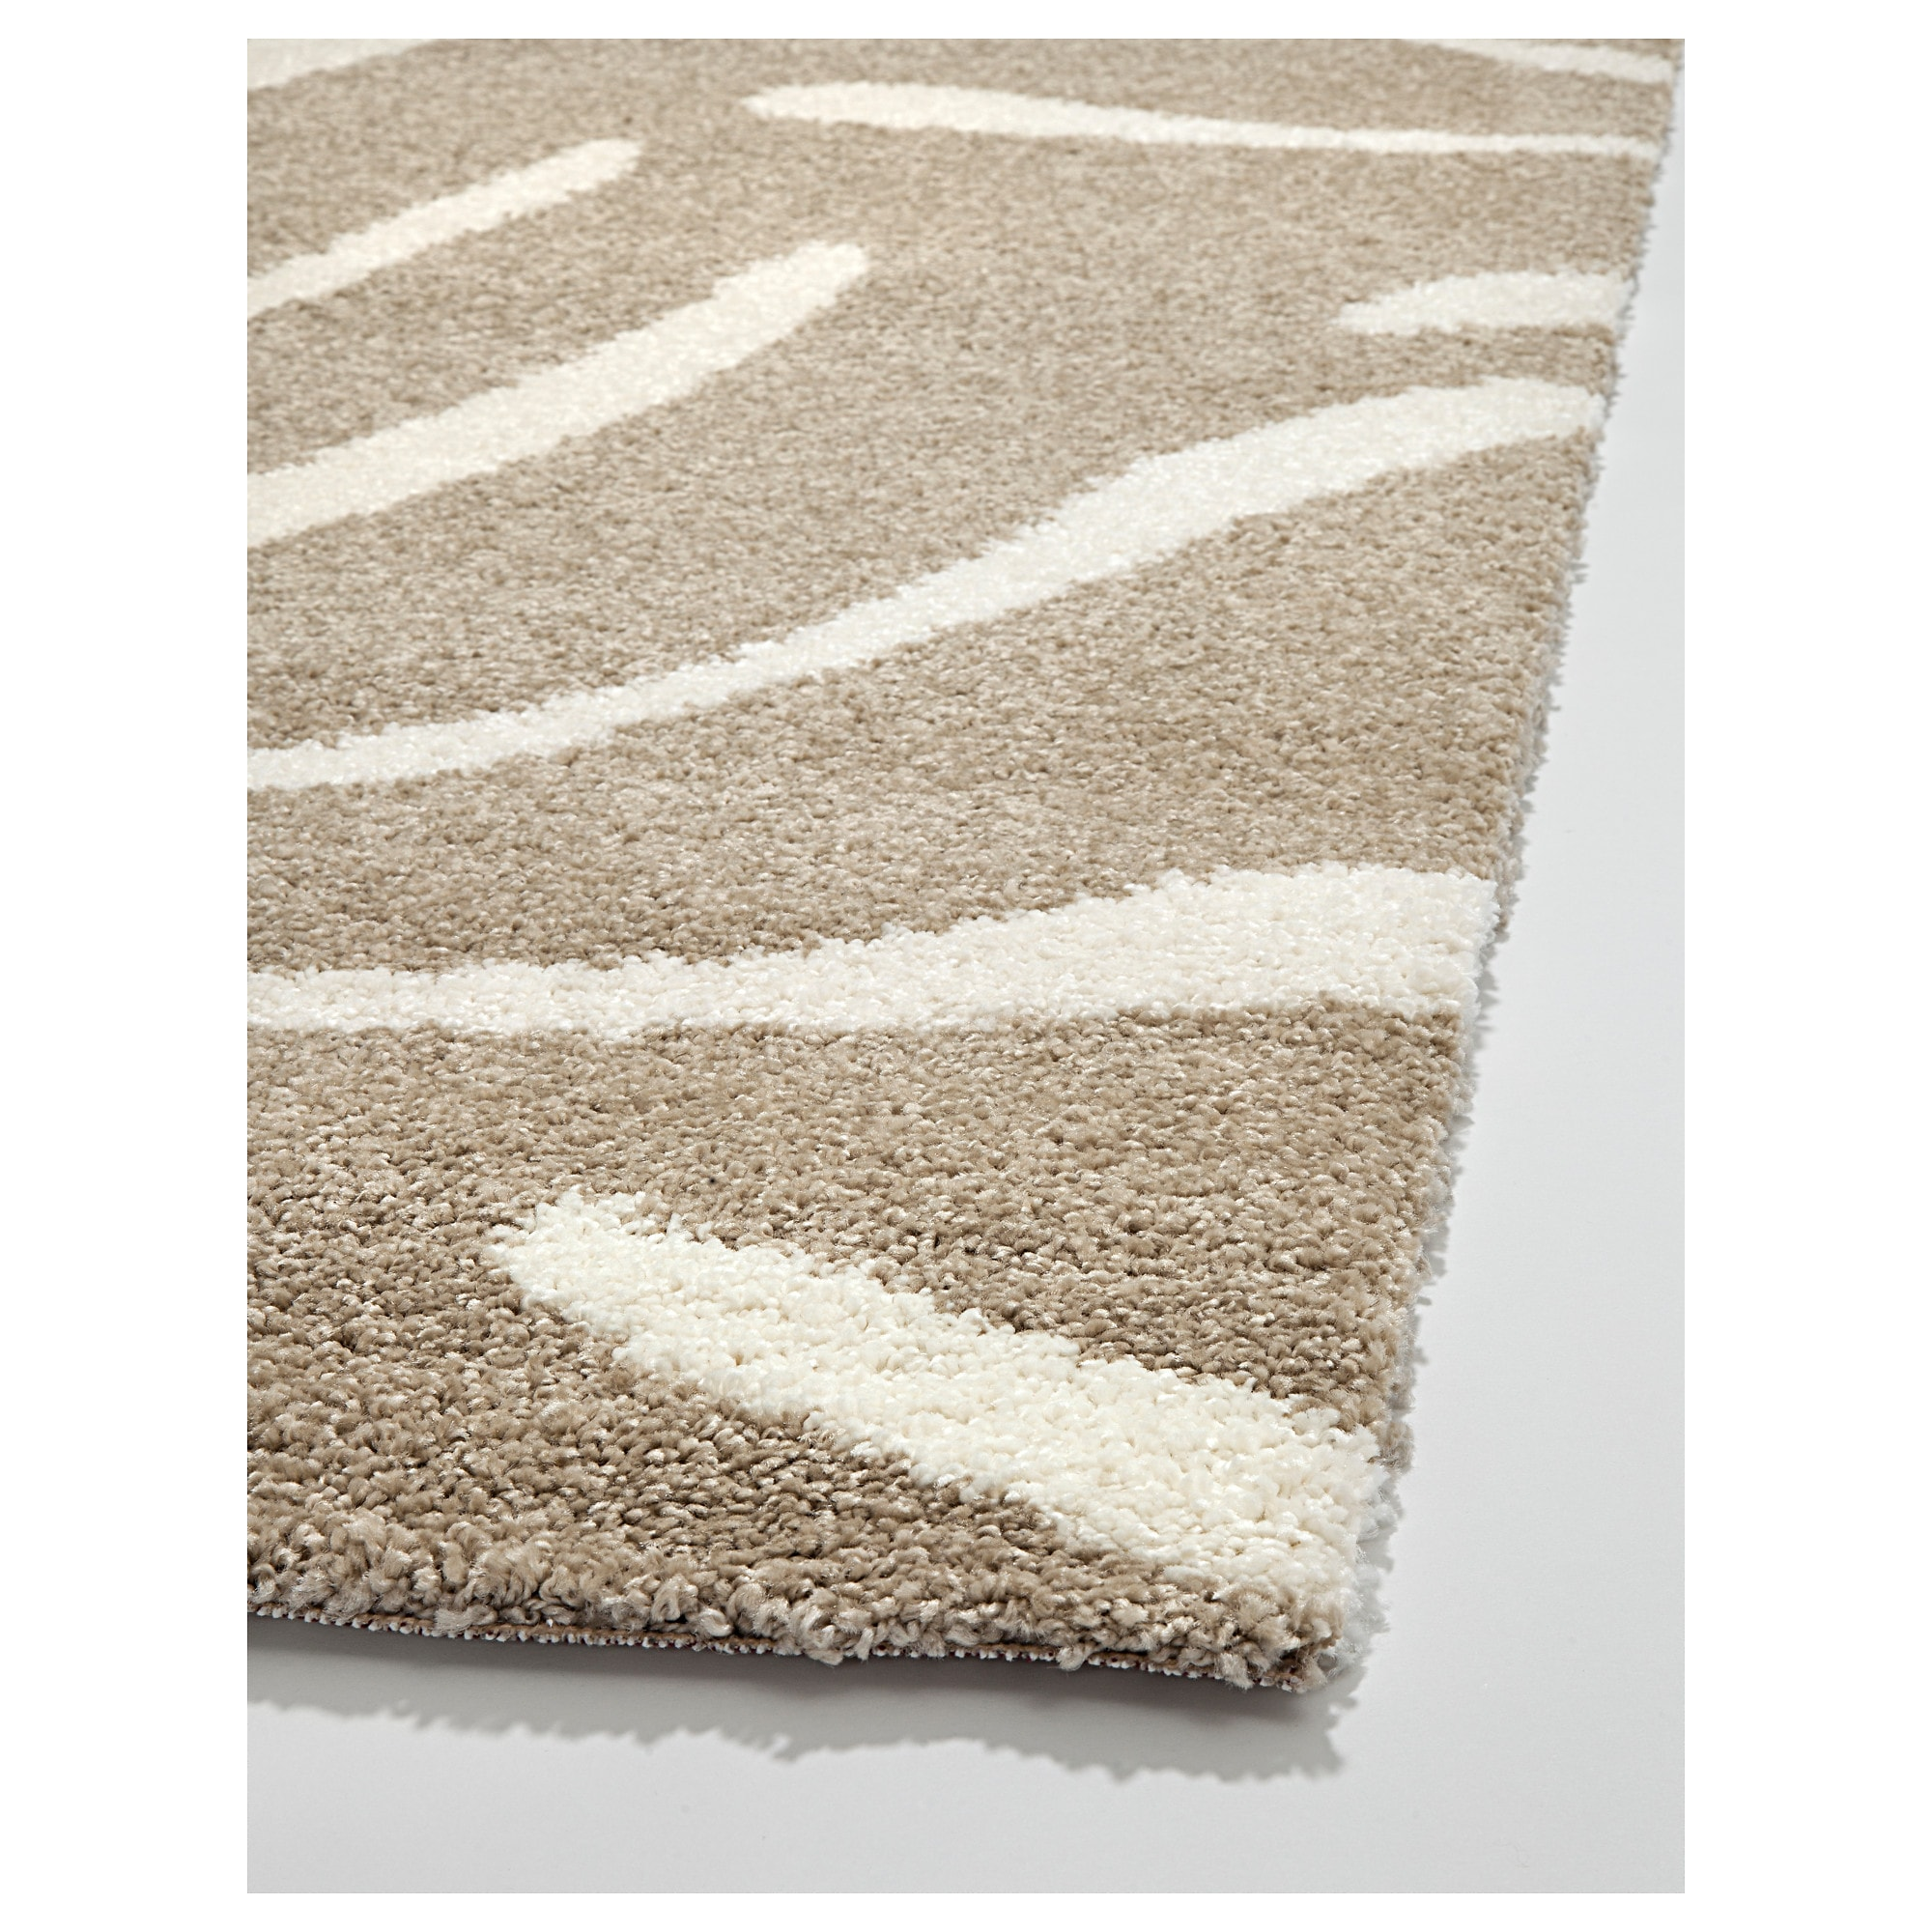 tapis en sisal ikea good tapis en sisal ikea tapis. Black Bedroom Furniture Sets. Home Design Ideas